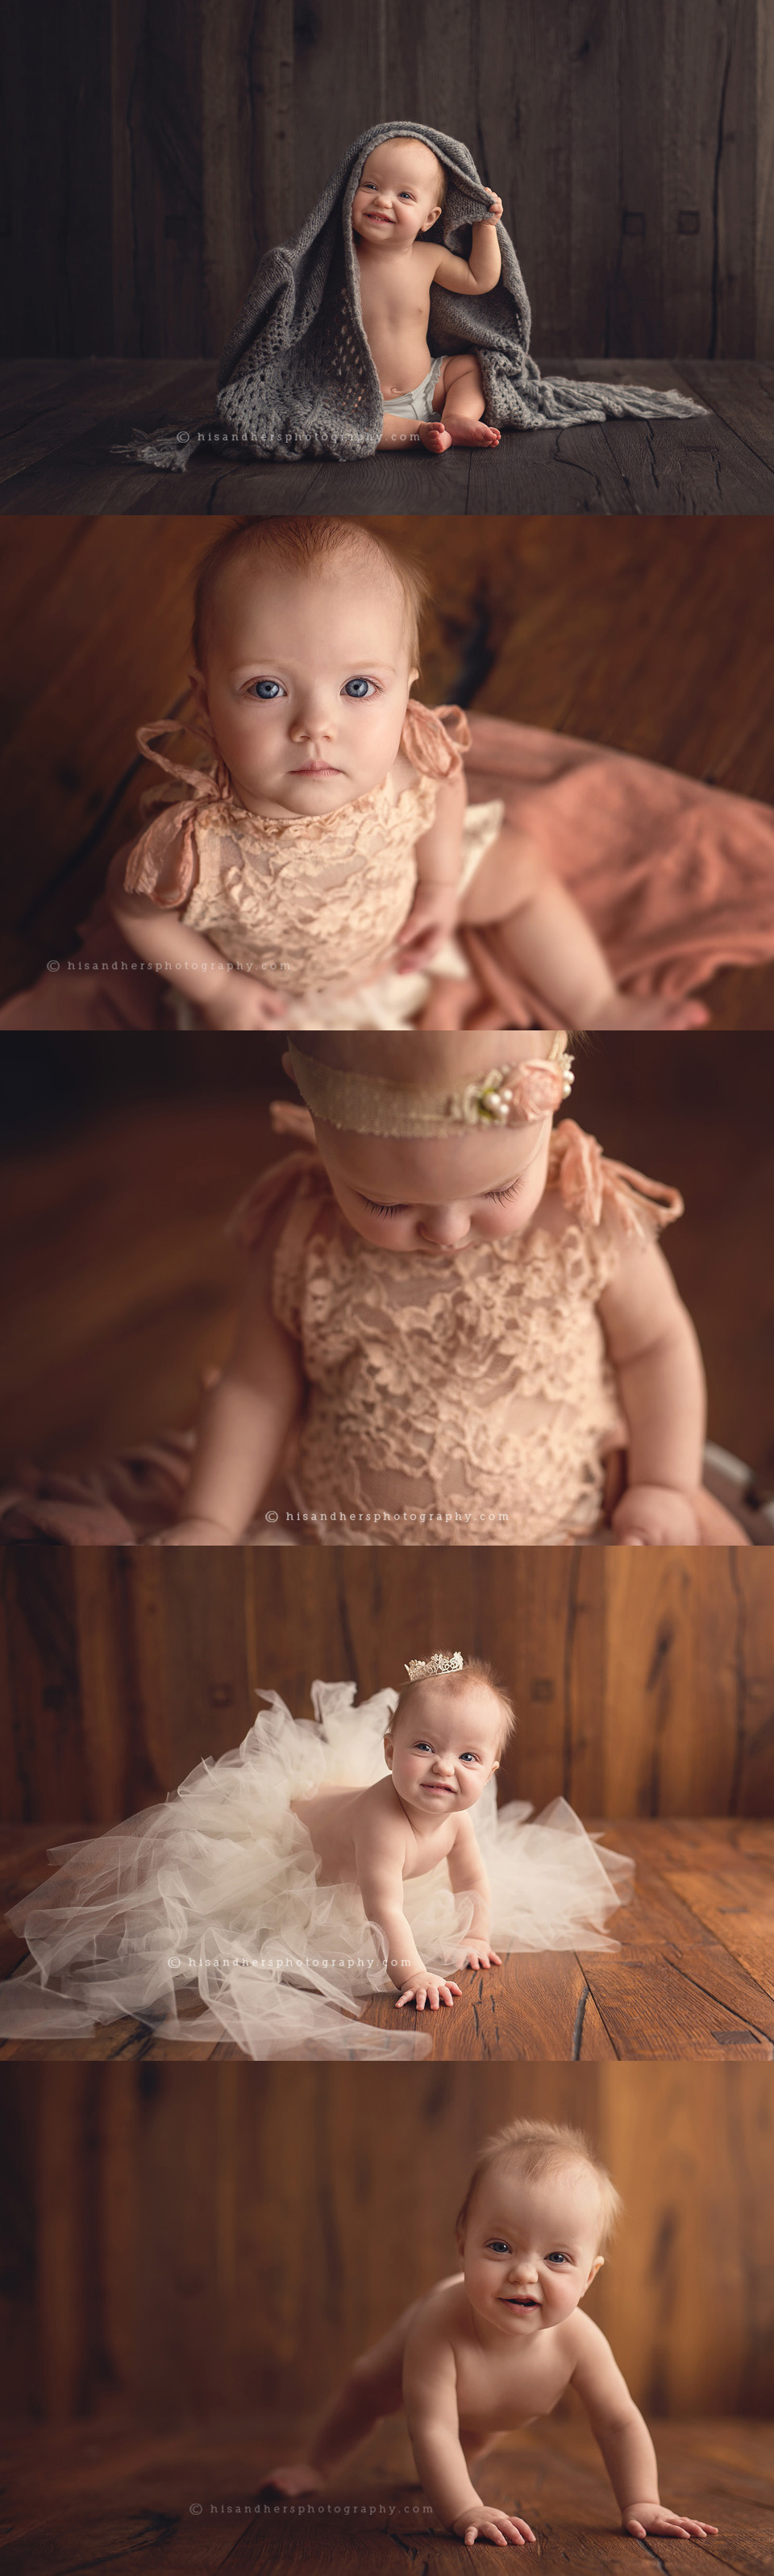 des moines iowa baby sitter sessions 6 mo 7 8 9 10 baby milestones photo session photographer photography